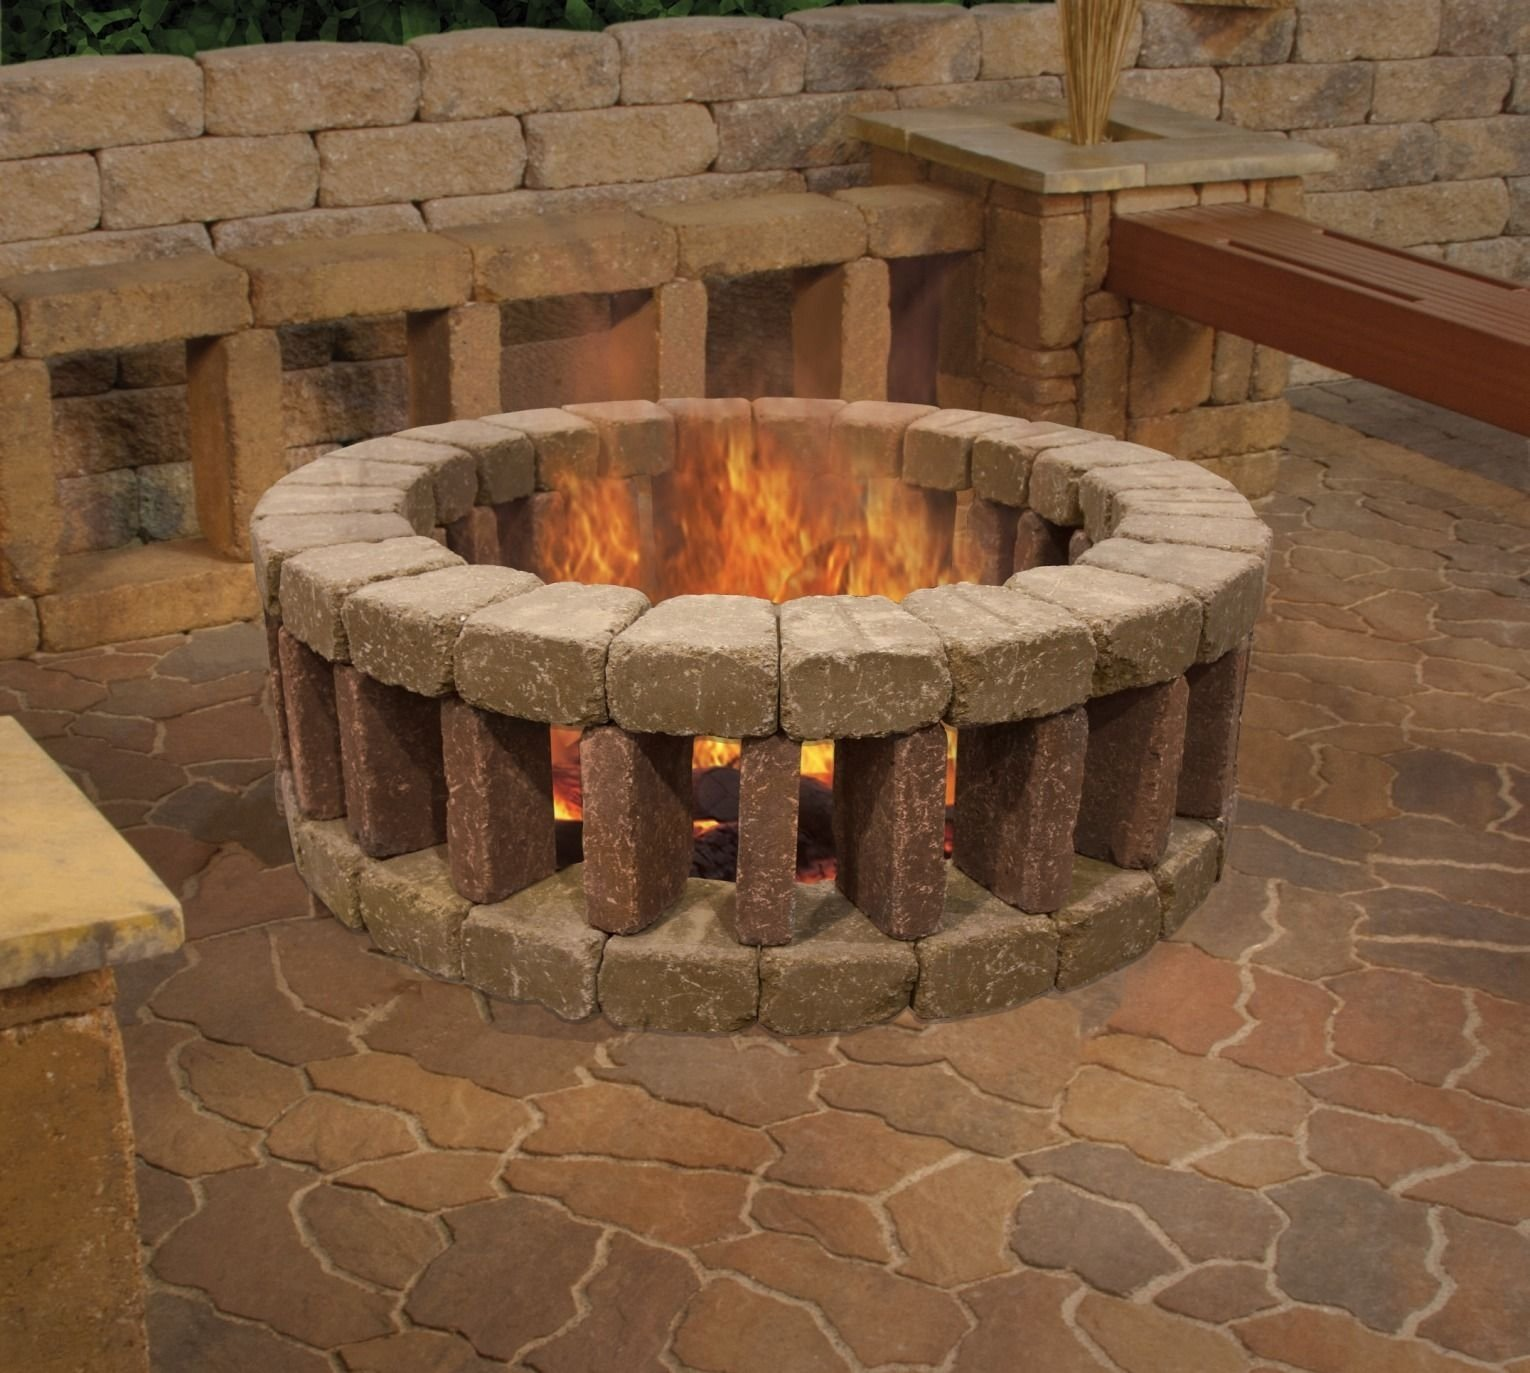 10 Spectacular Do It Yourself Fire Pit Ideas enjoy your evenings outsidelounging around a belgian fire ring 2021